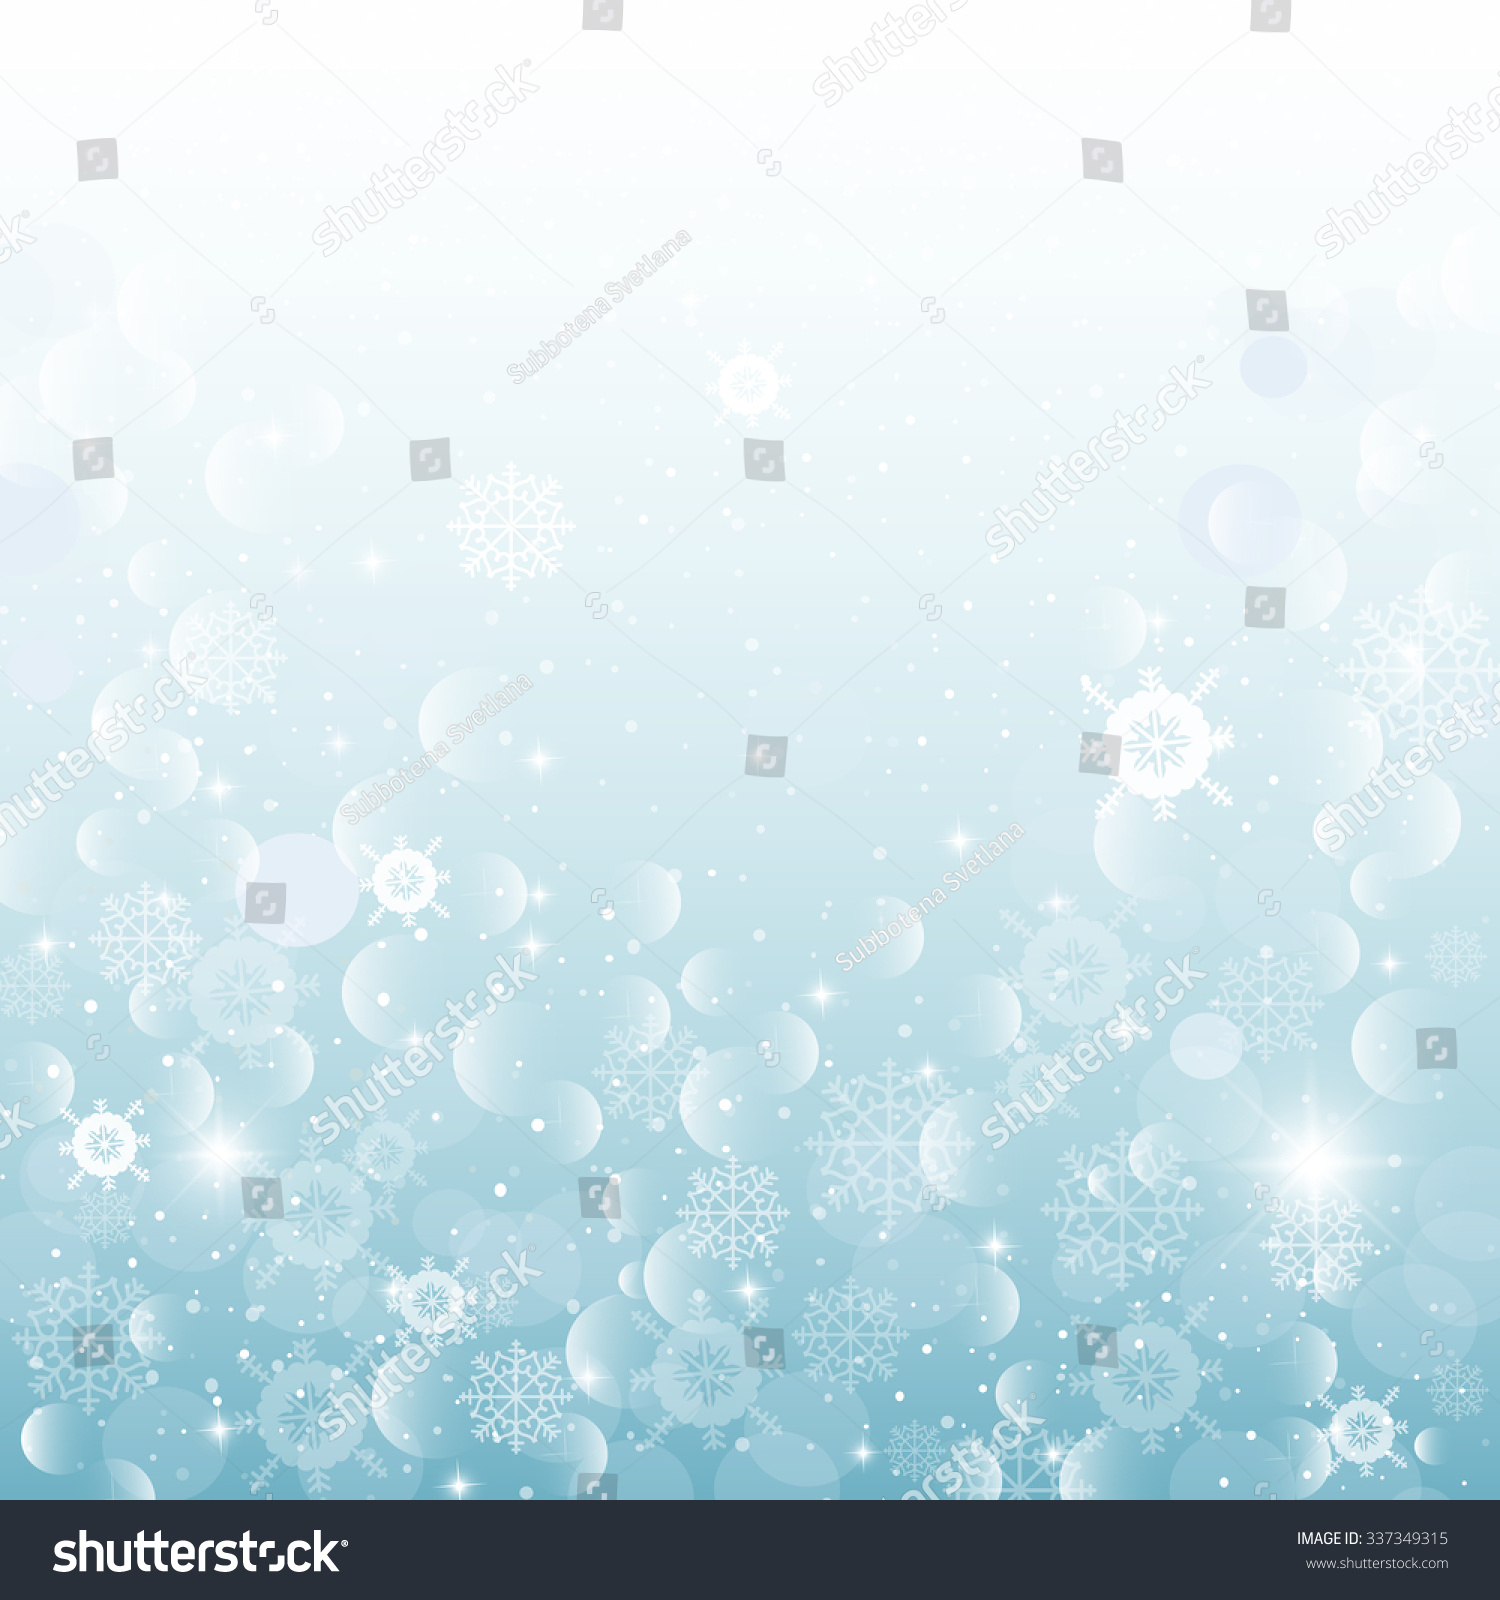 new year background for greeting card menu bannerchristmas abstract snowy background